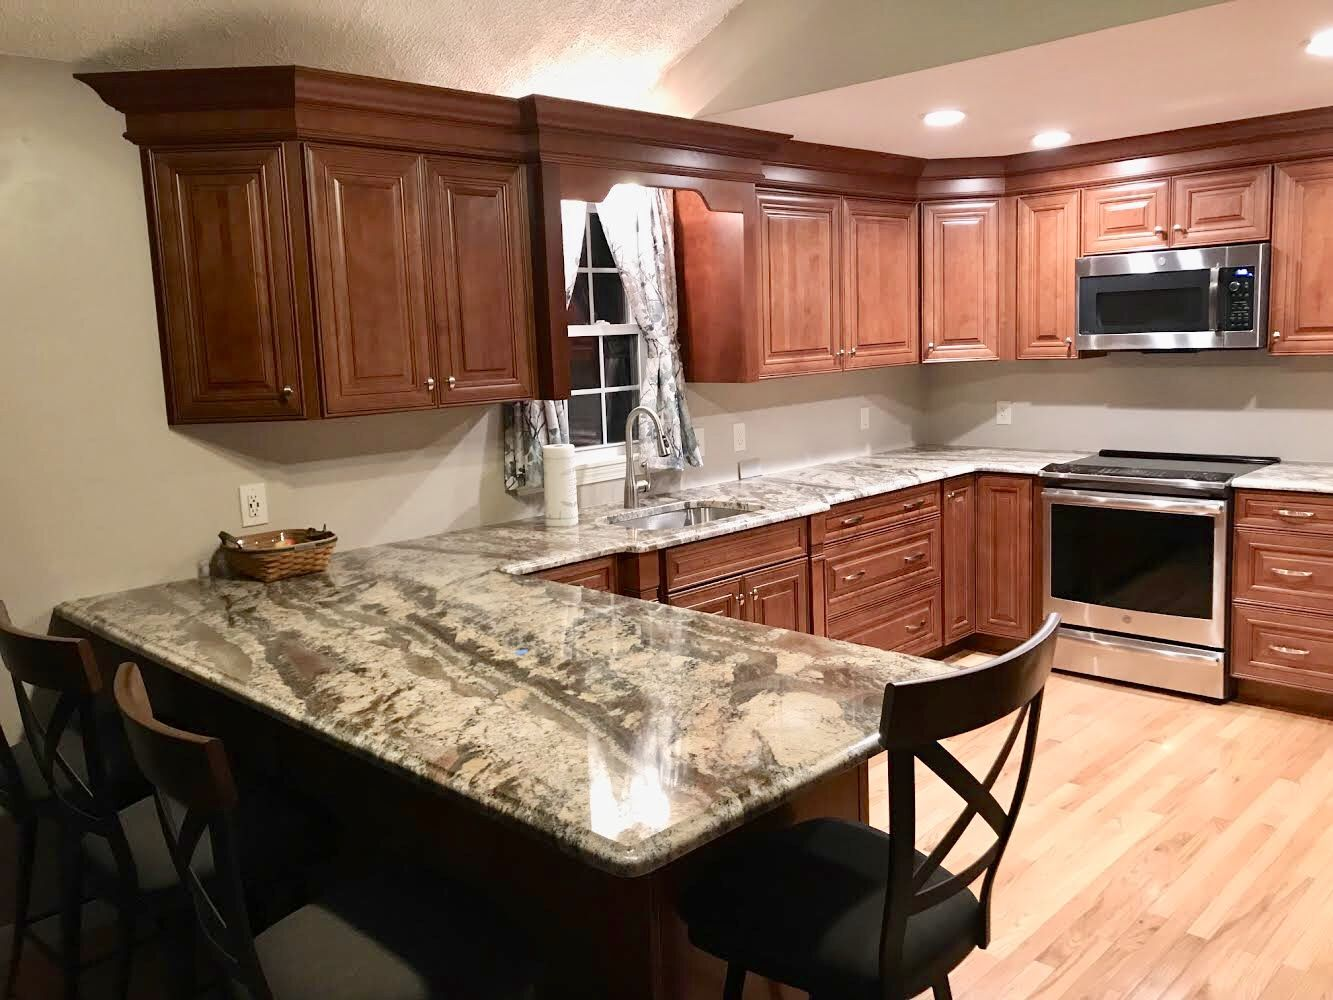 discount kitchen cabinet outlet cleveland ohio: | give us